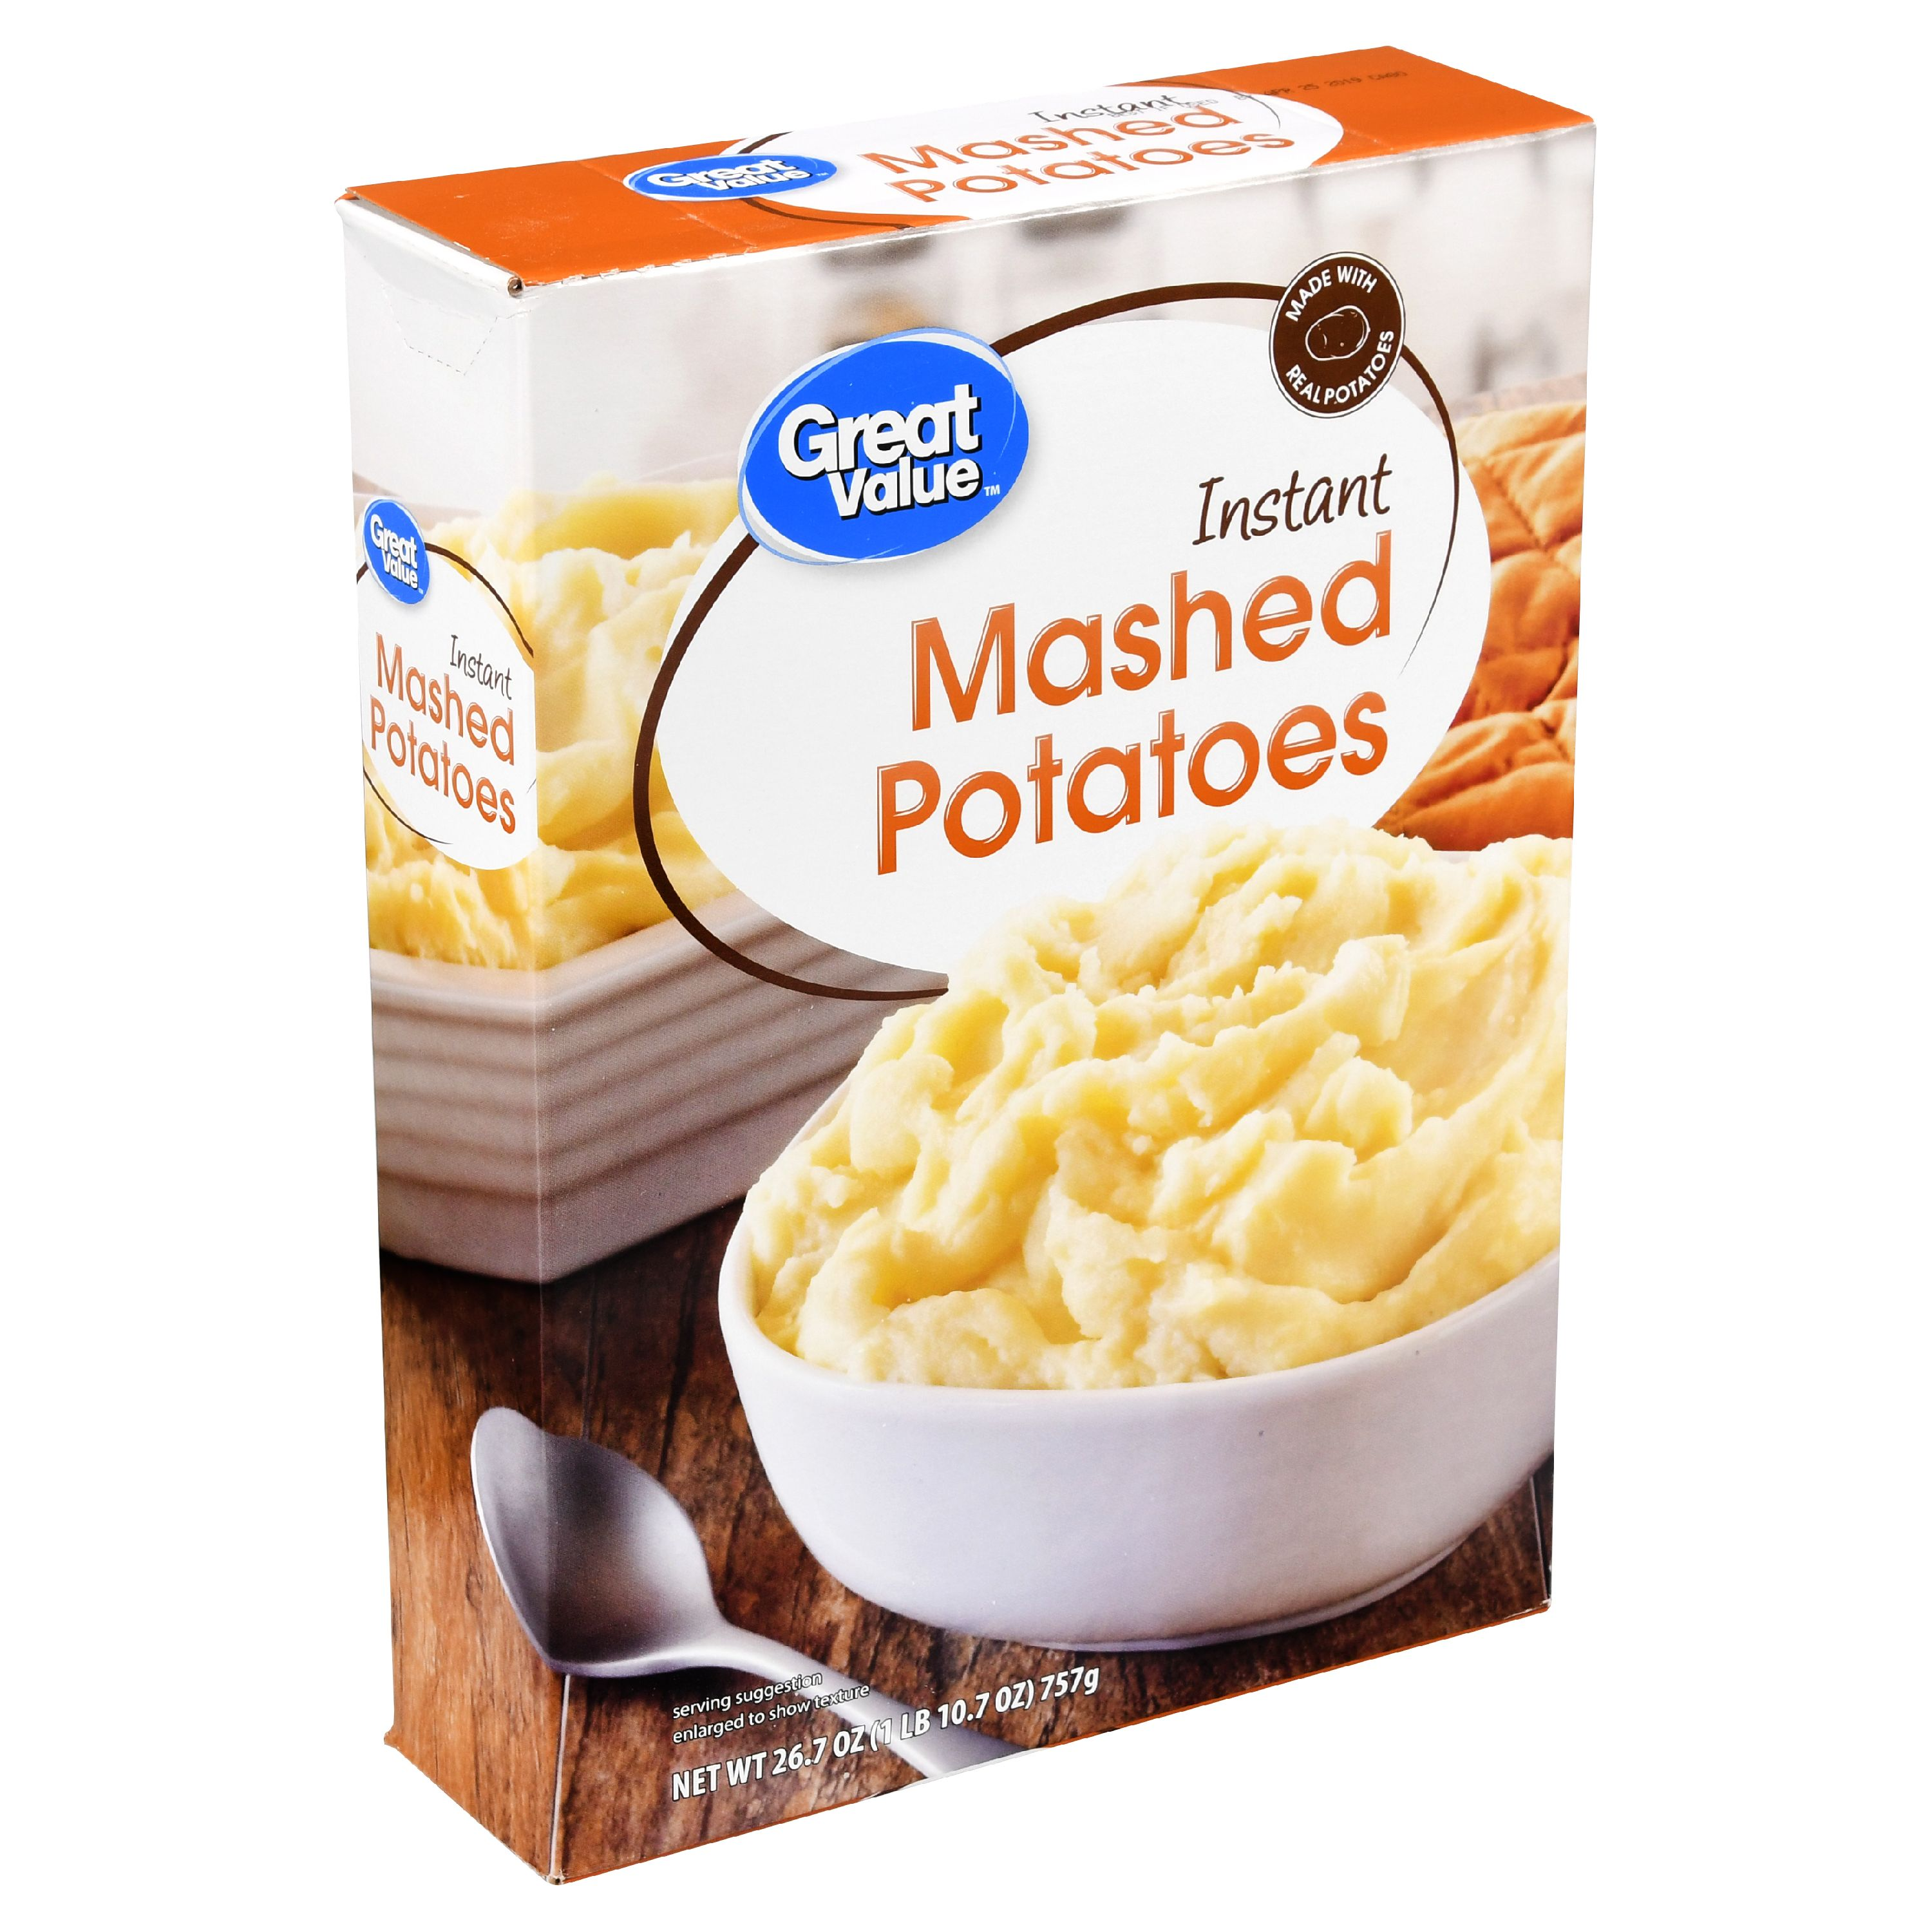 Great Value Instant Mashed Potatoes, 26.7 oz